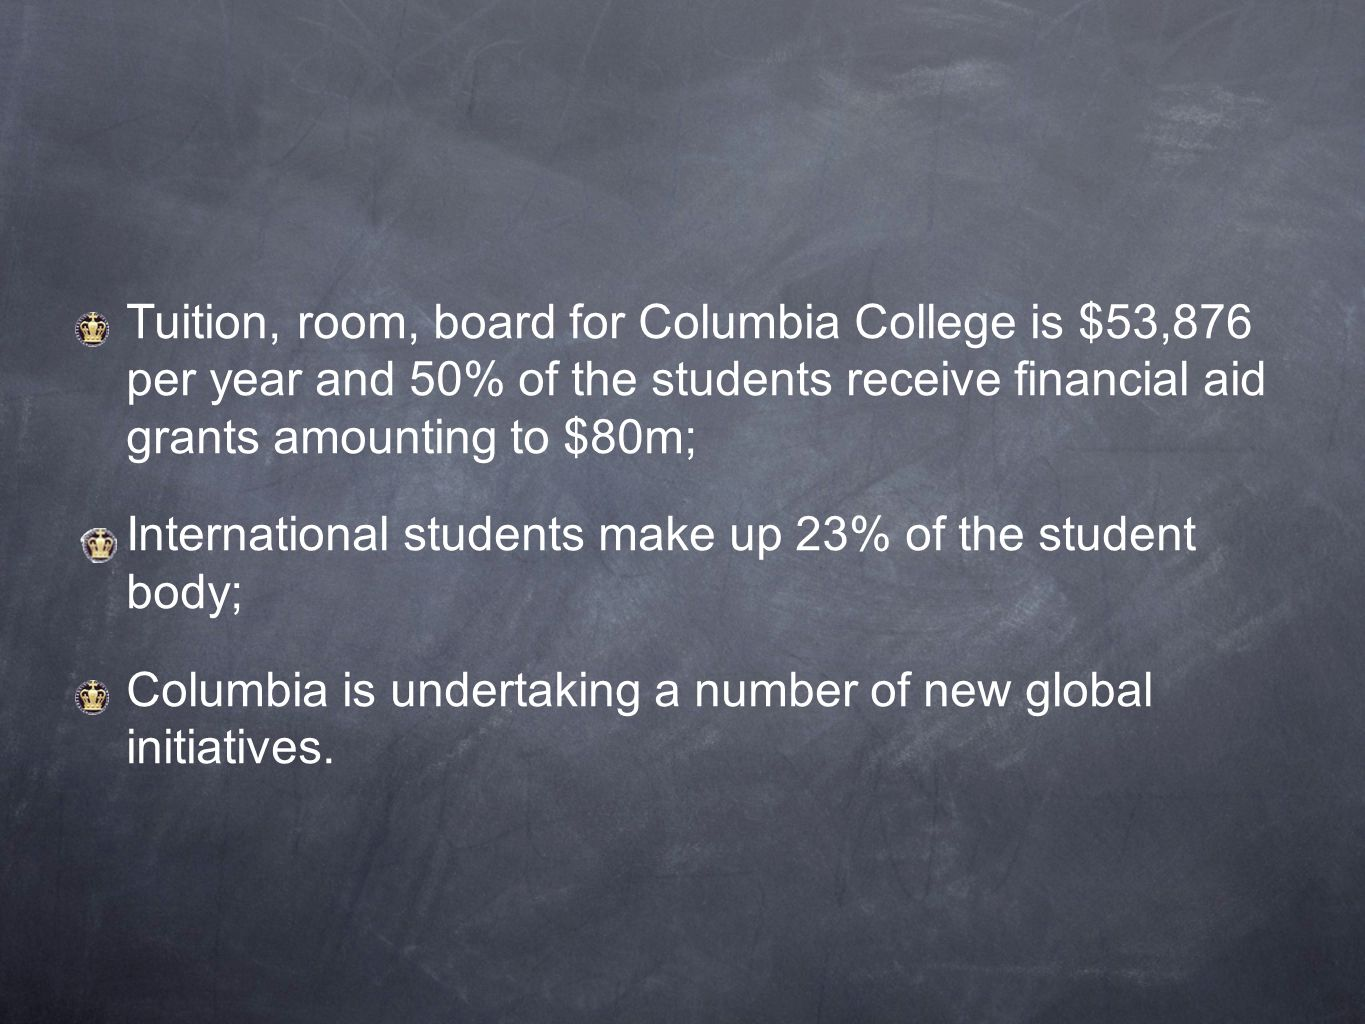 Tuition, room, board for Columbia College is $53,876 per year and 50% of the students receive financial aid grants amounting to $80m; International st